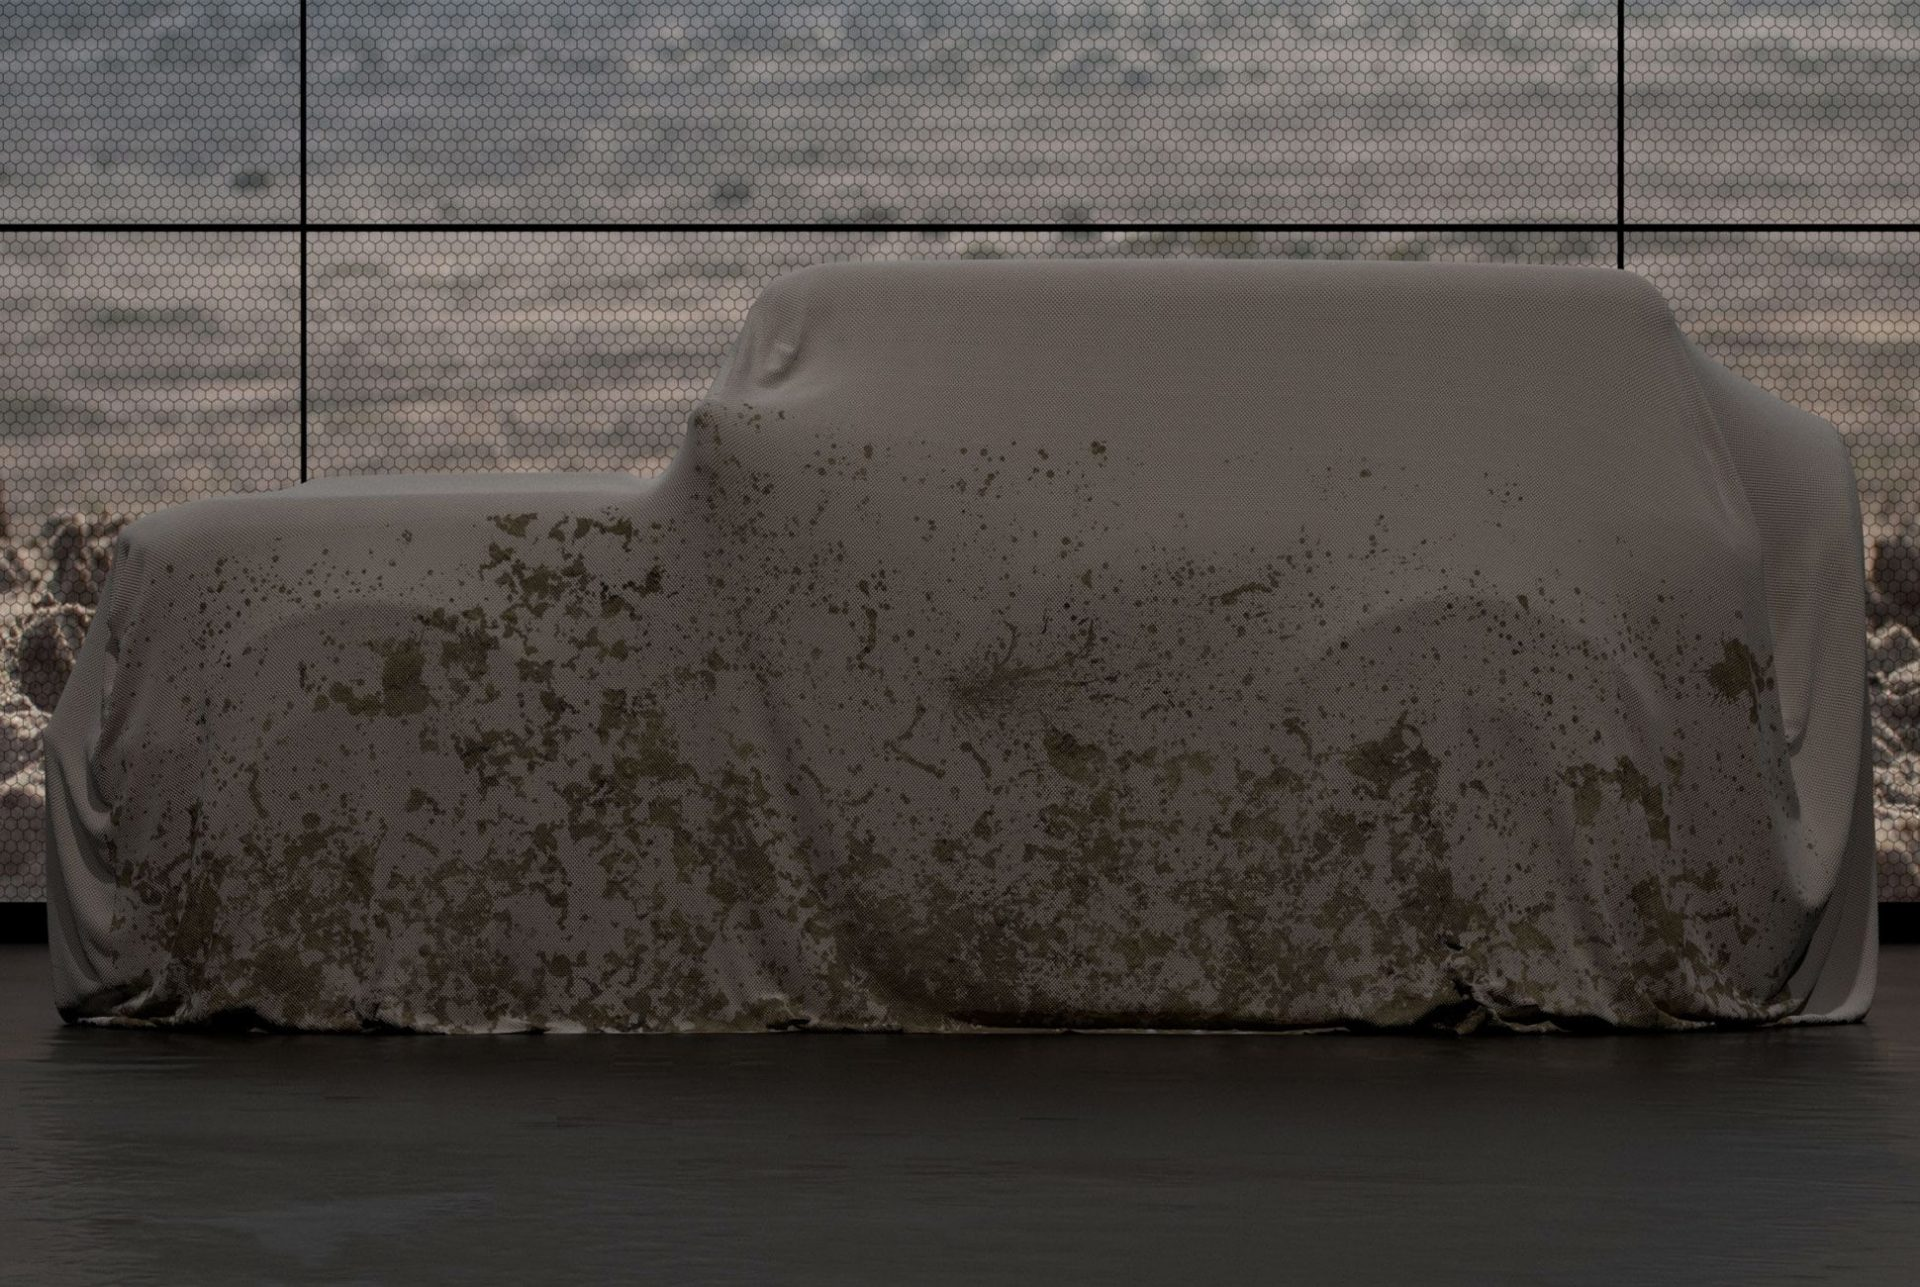 Our First Look at the 2020 Ford Bronco is a Real Tease 2